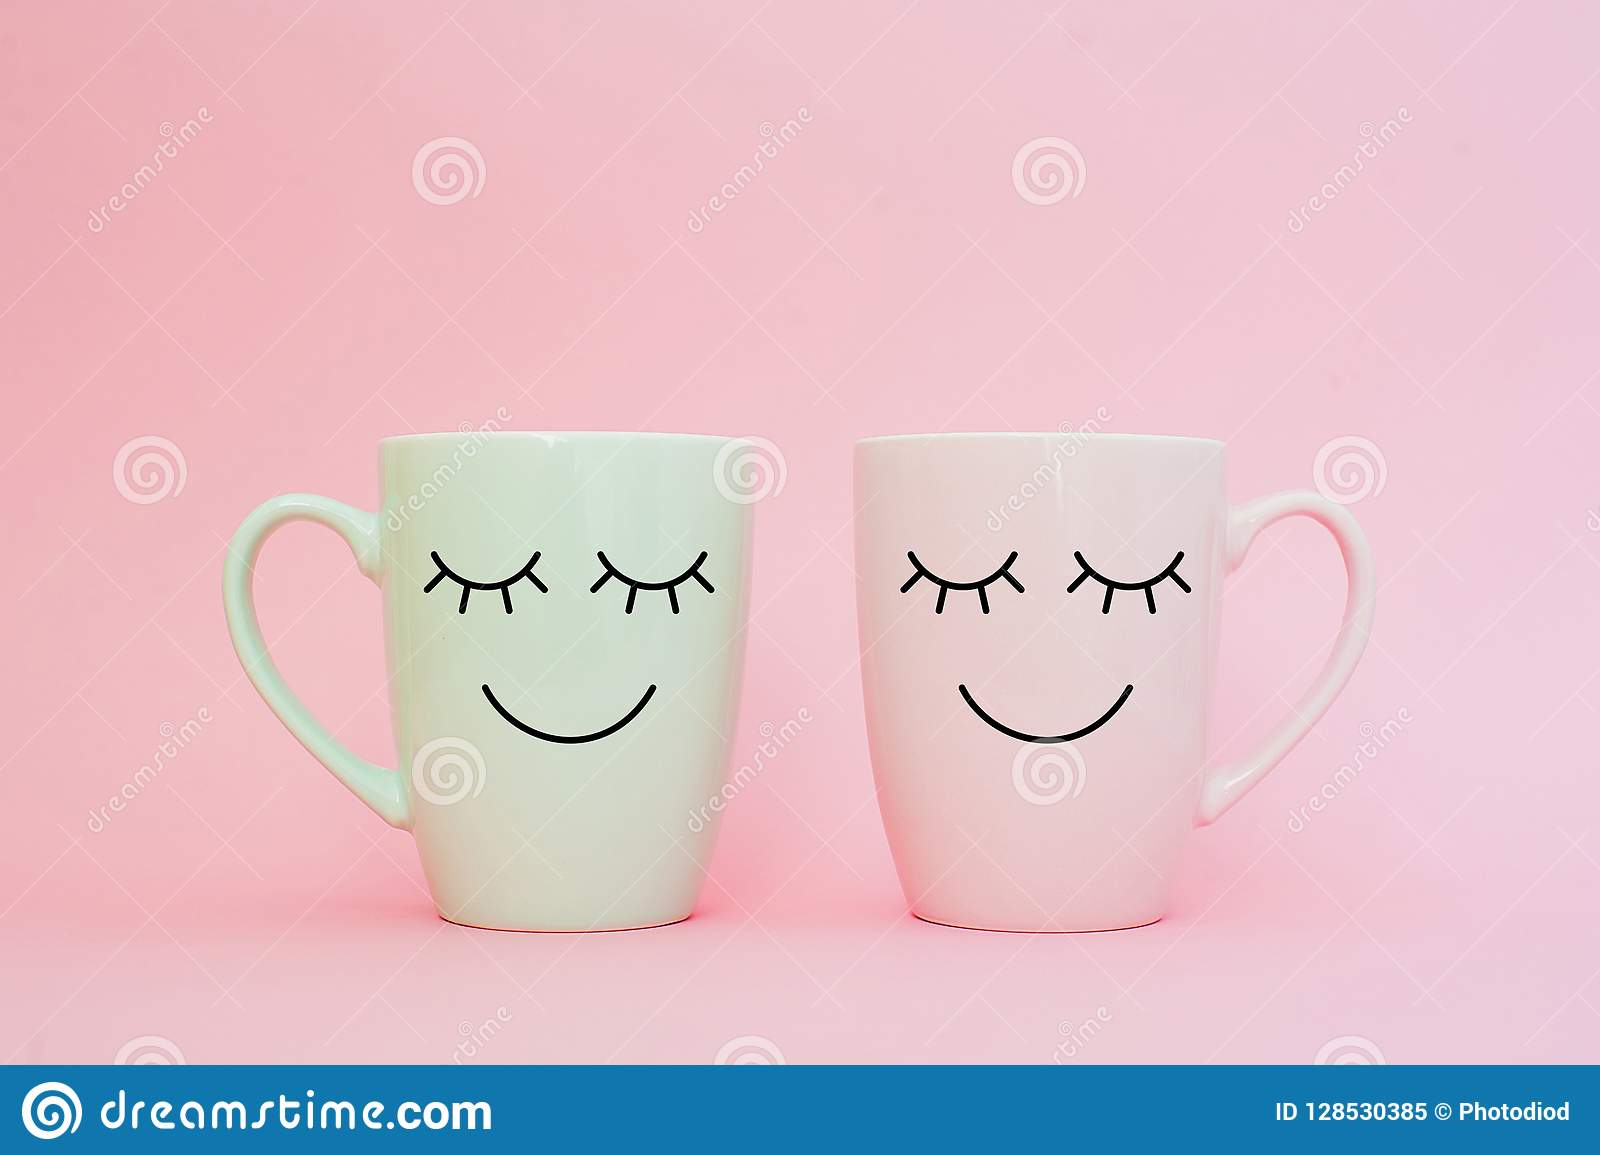 Happy friday word. Two cups of coffee stand together to be heart shape on pink background with smile face on cup.